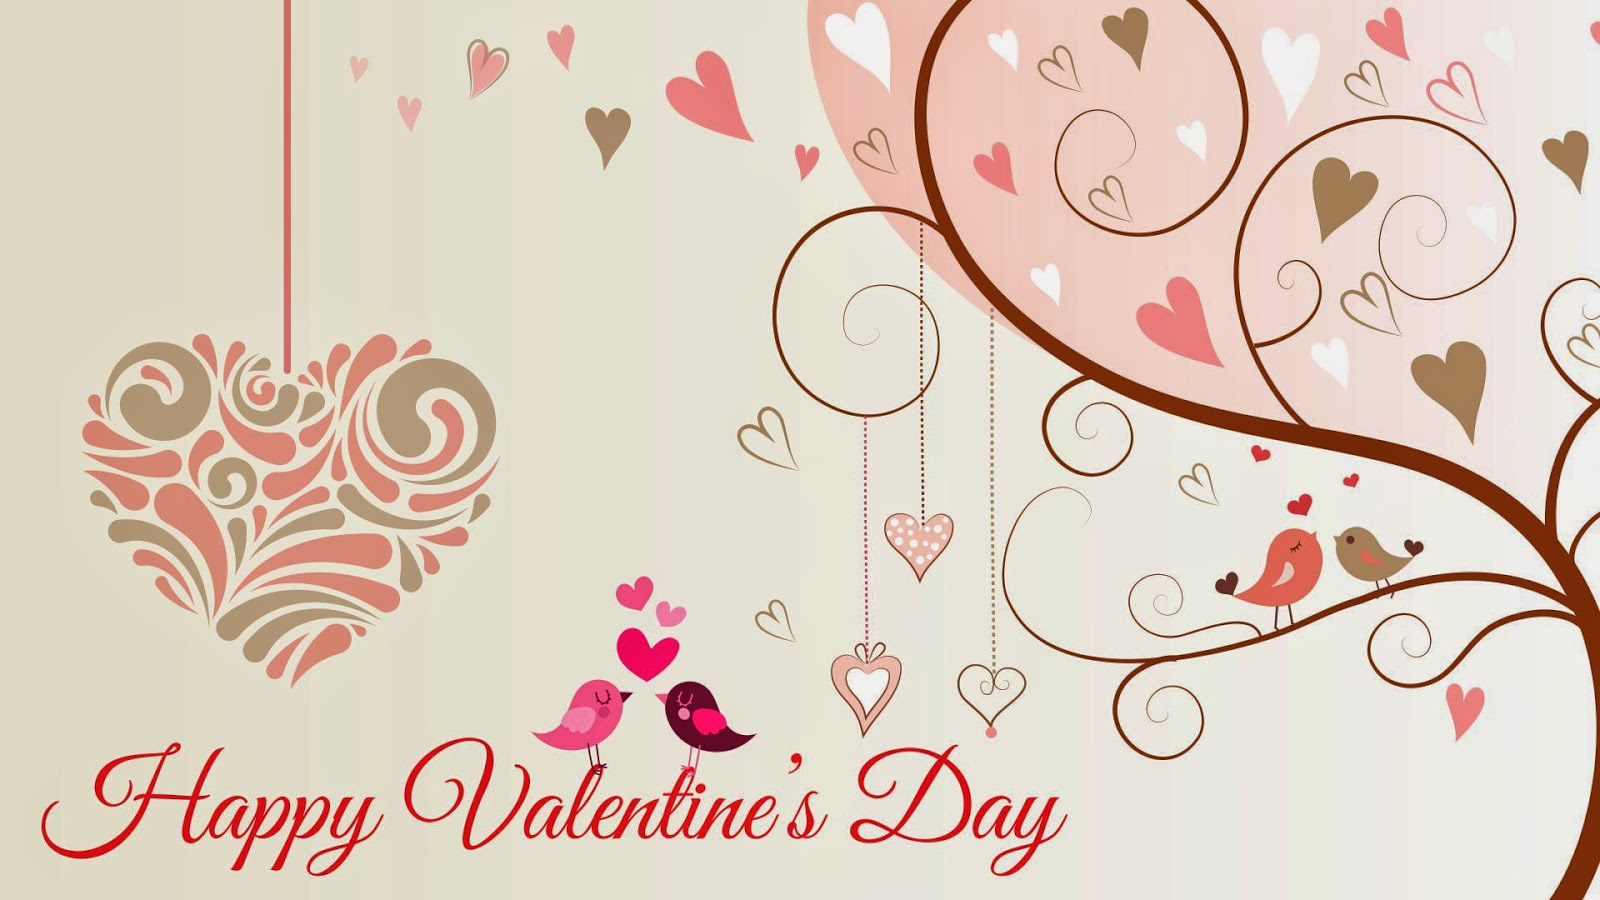 Advance happy valentines day 2019 wishes sms for Valentines day ideas seattle